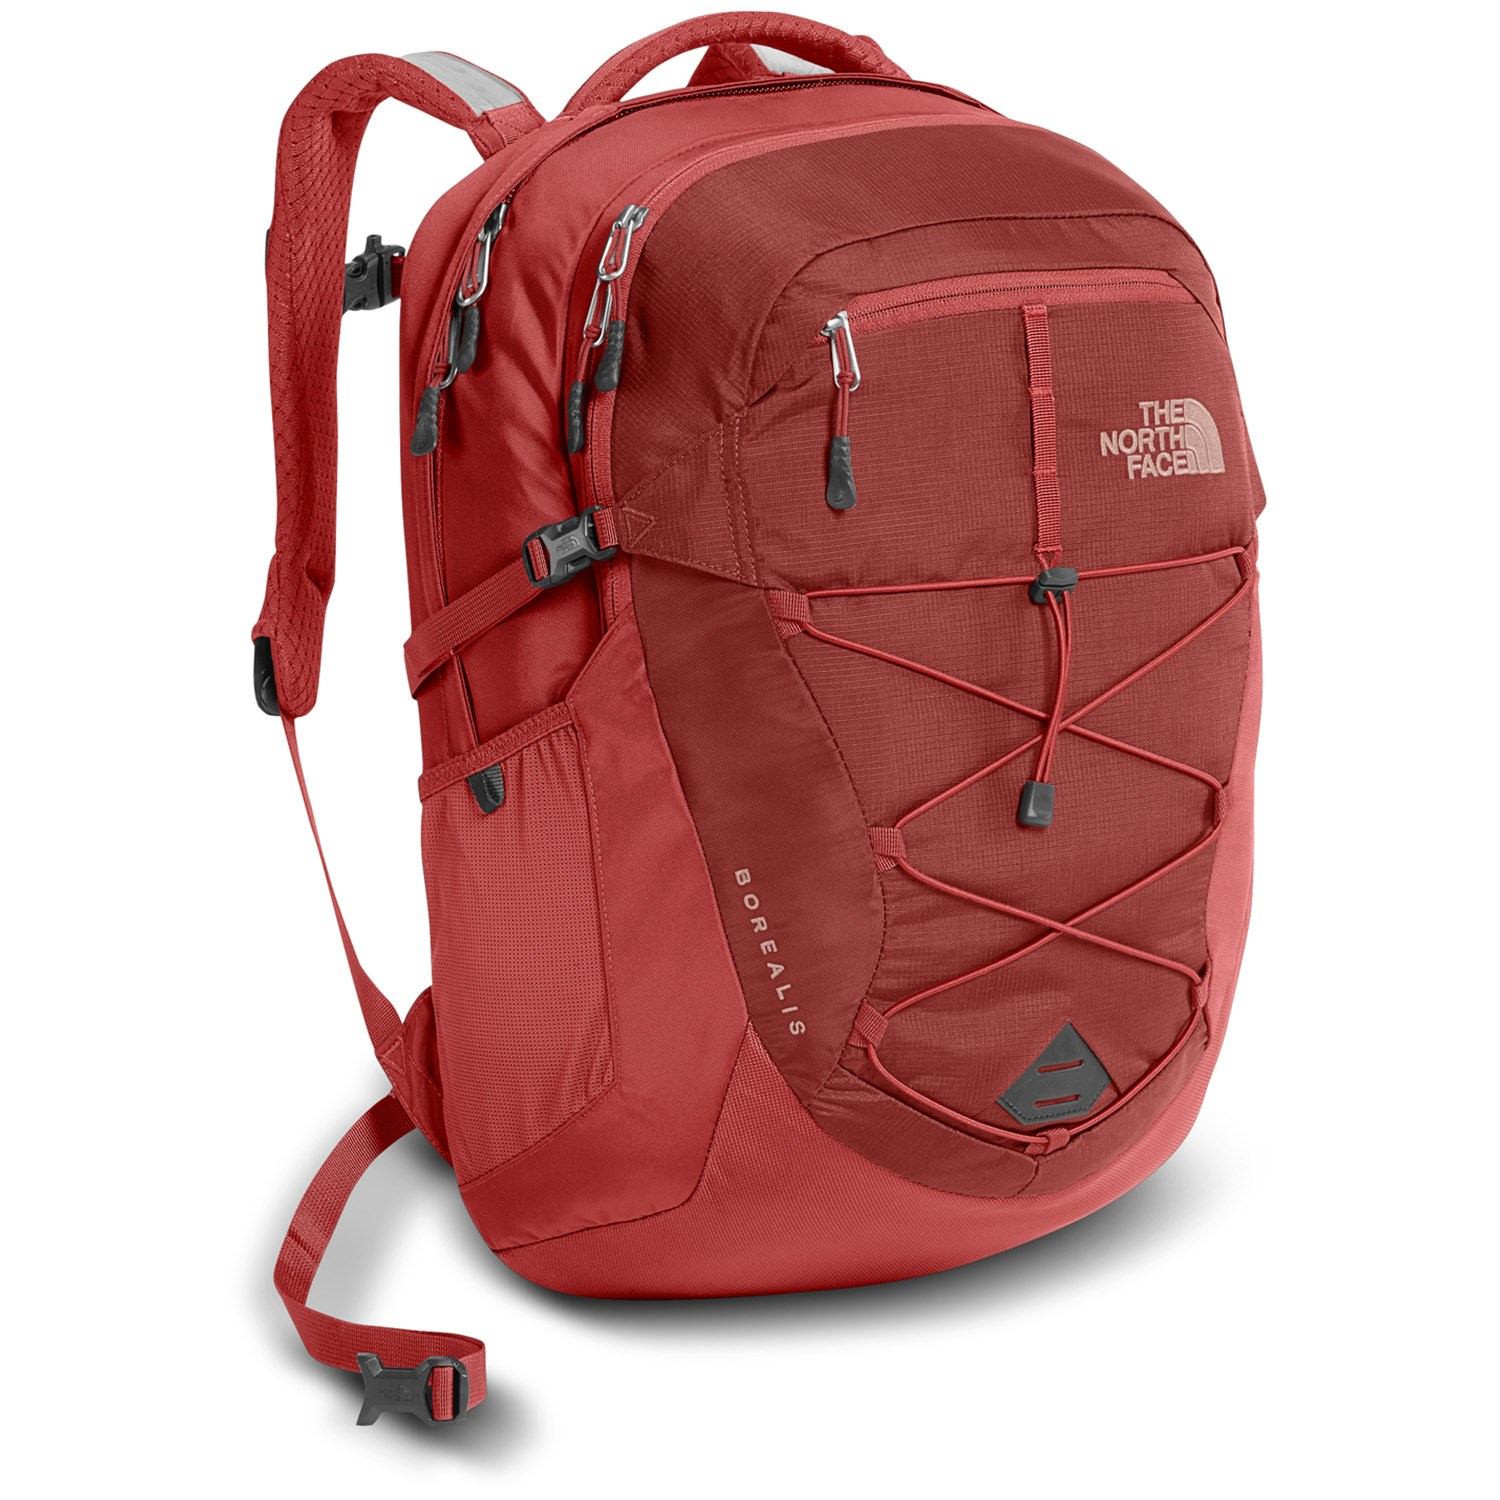 c193e38d3 Where To Buy North Face Backpacks Near Me - CEAGESP